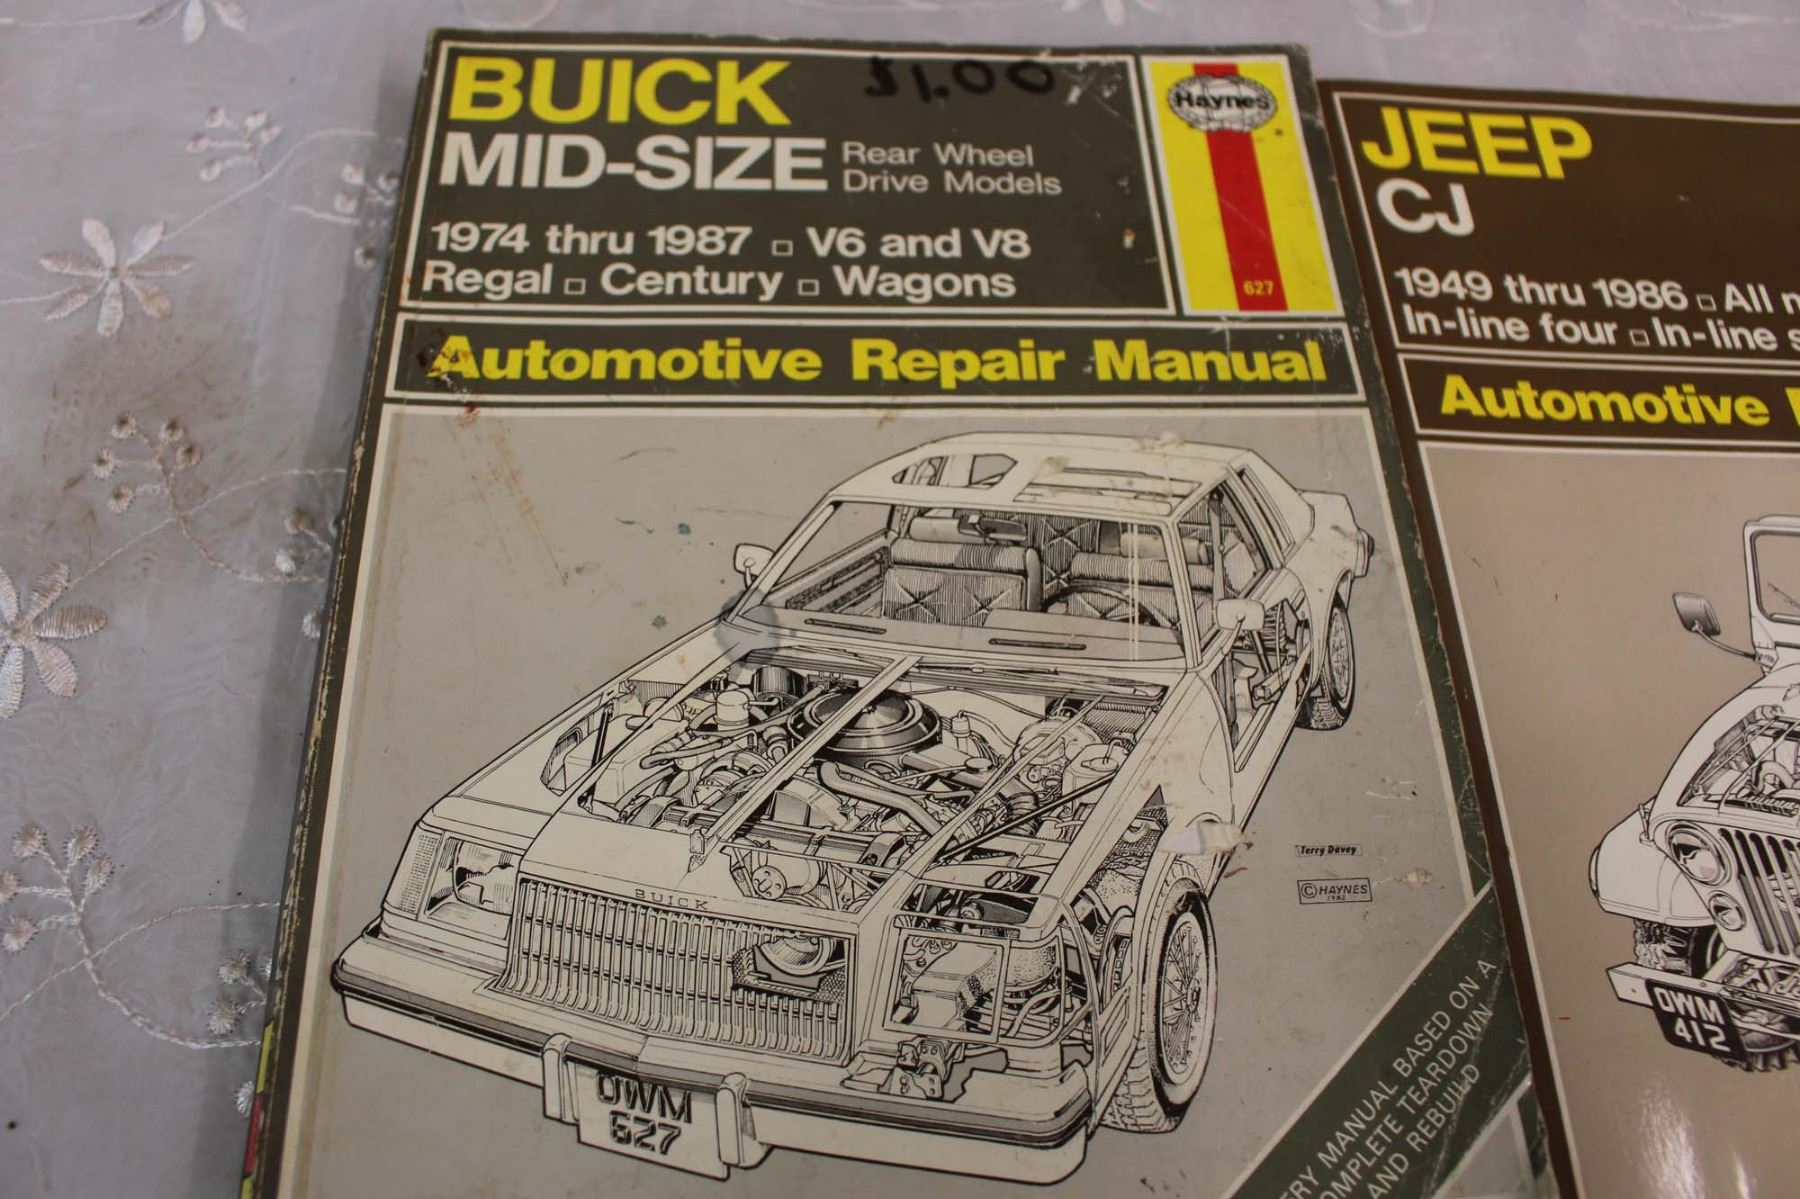 ... Image 2 : (6) Haynes Auto Manuals (Ford, Jeep, Buick) ...